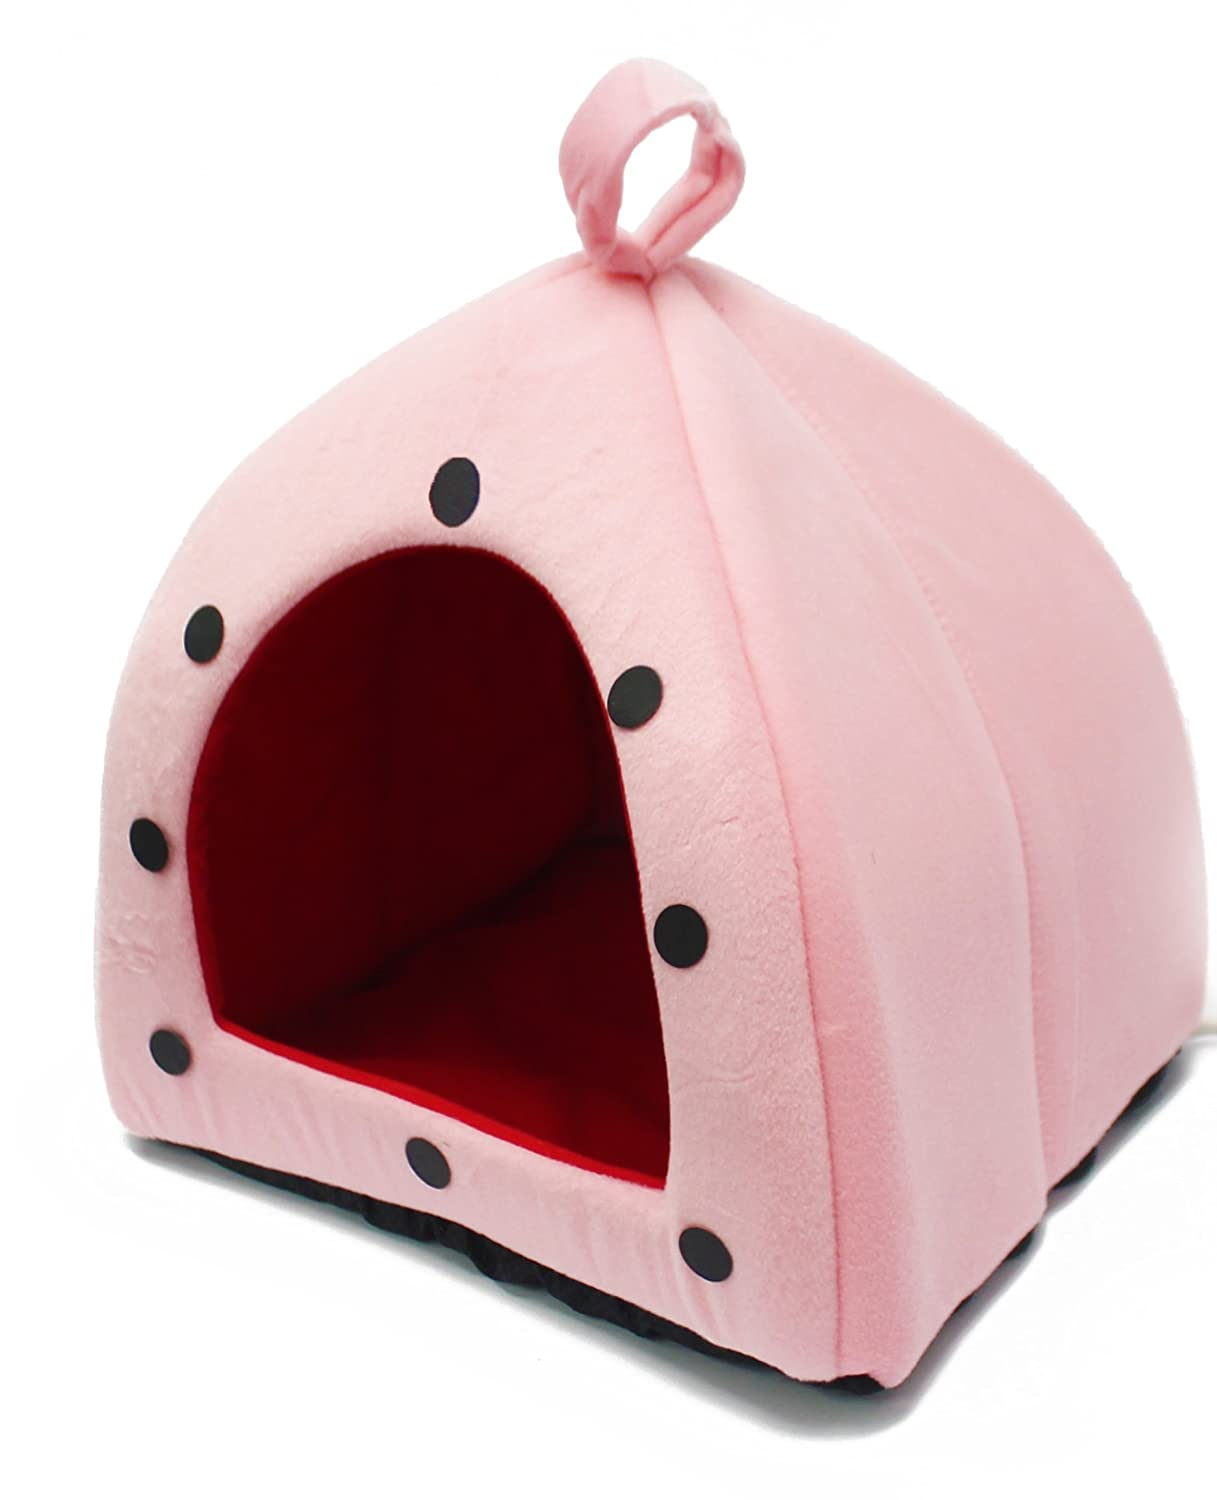 Milliard Indoor Heated Pet Dome - Pink and Blue Vinyl Removable Heating Pad